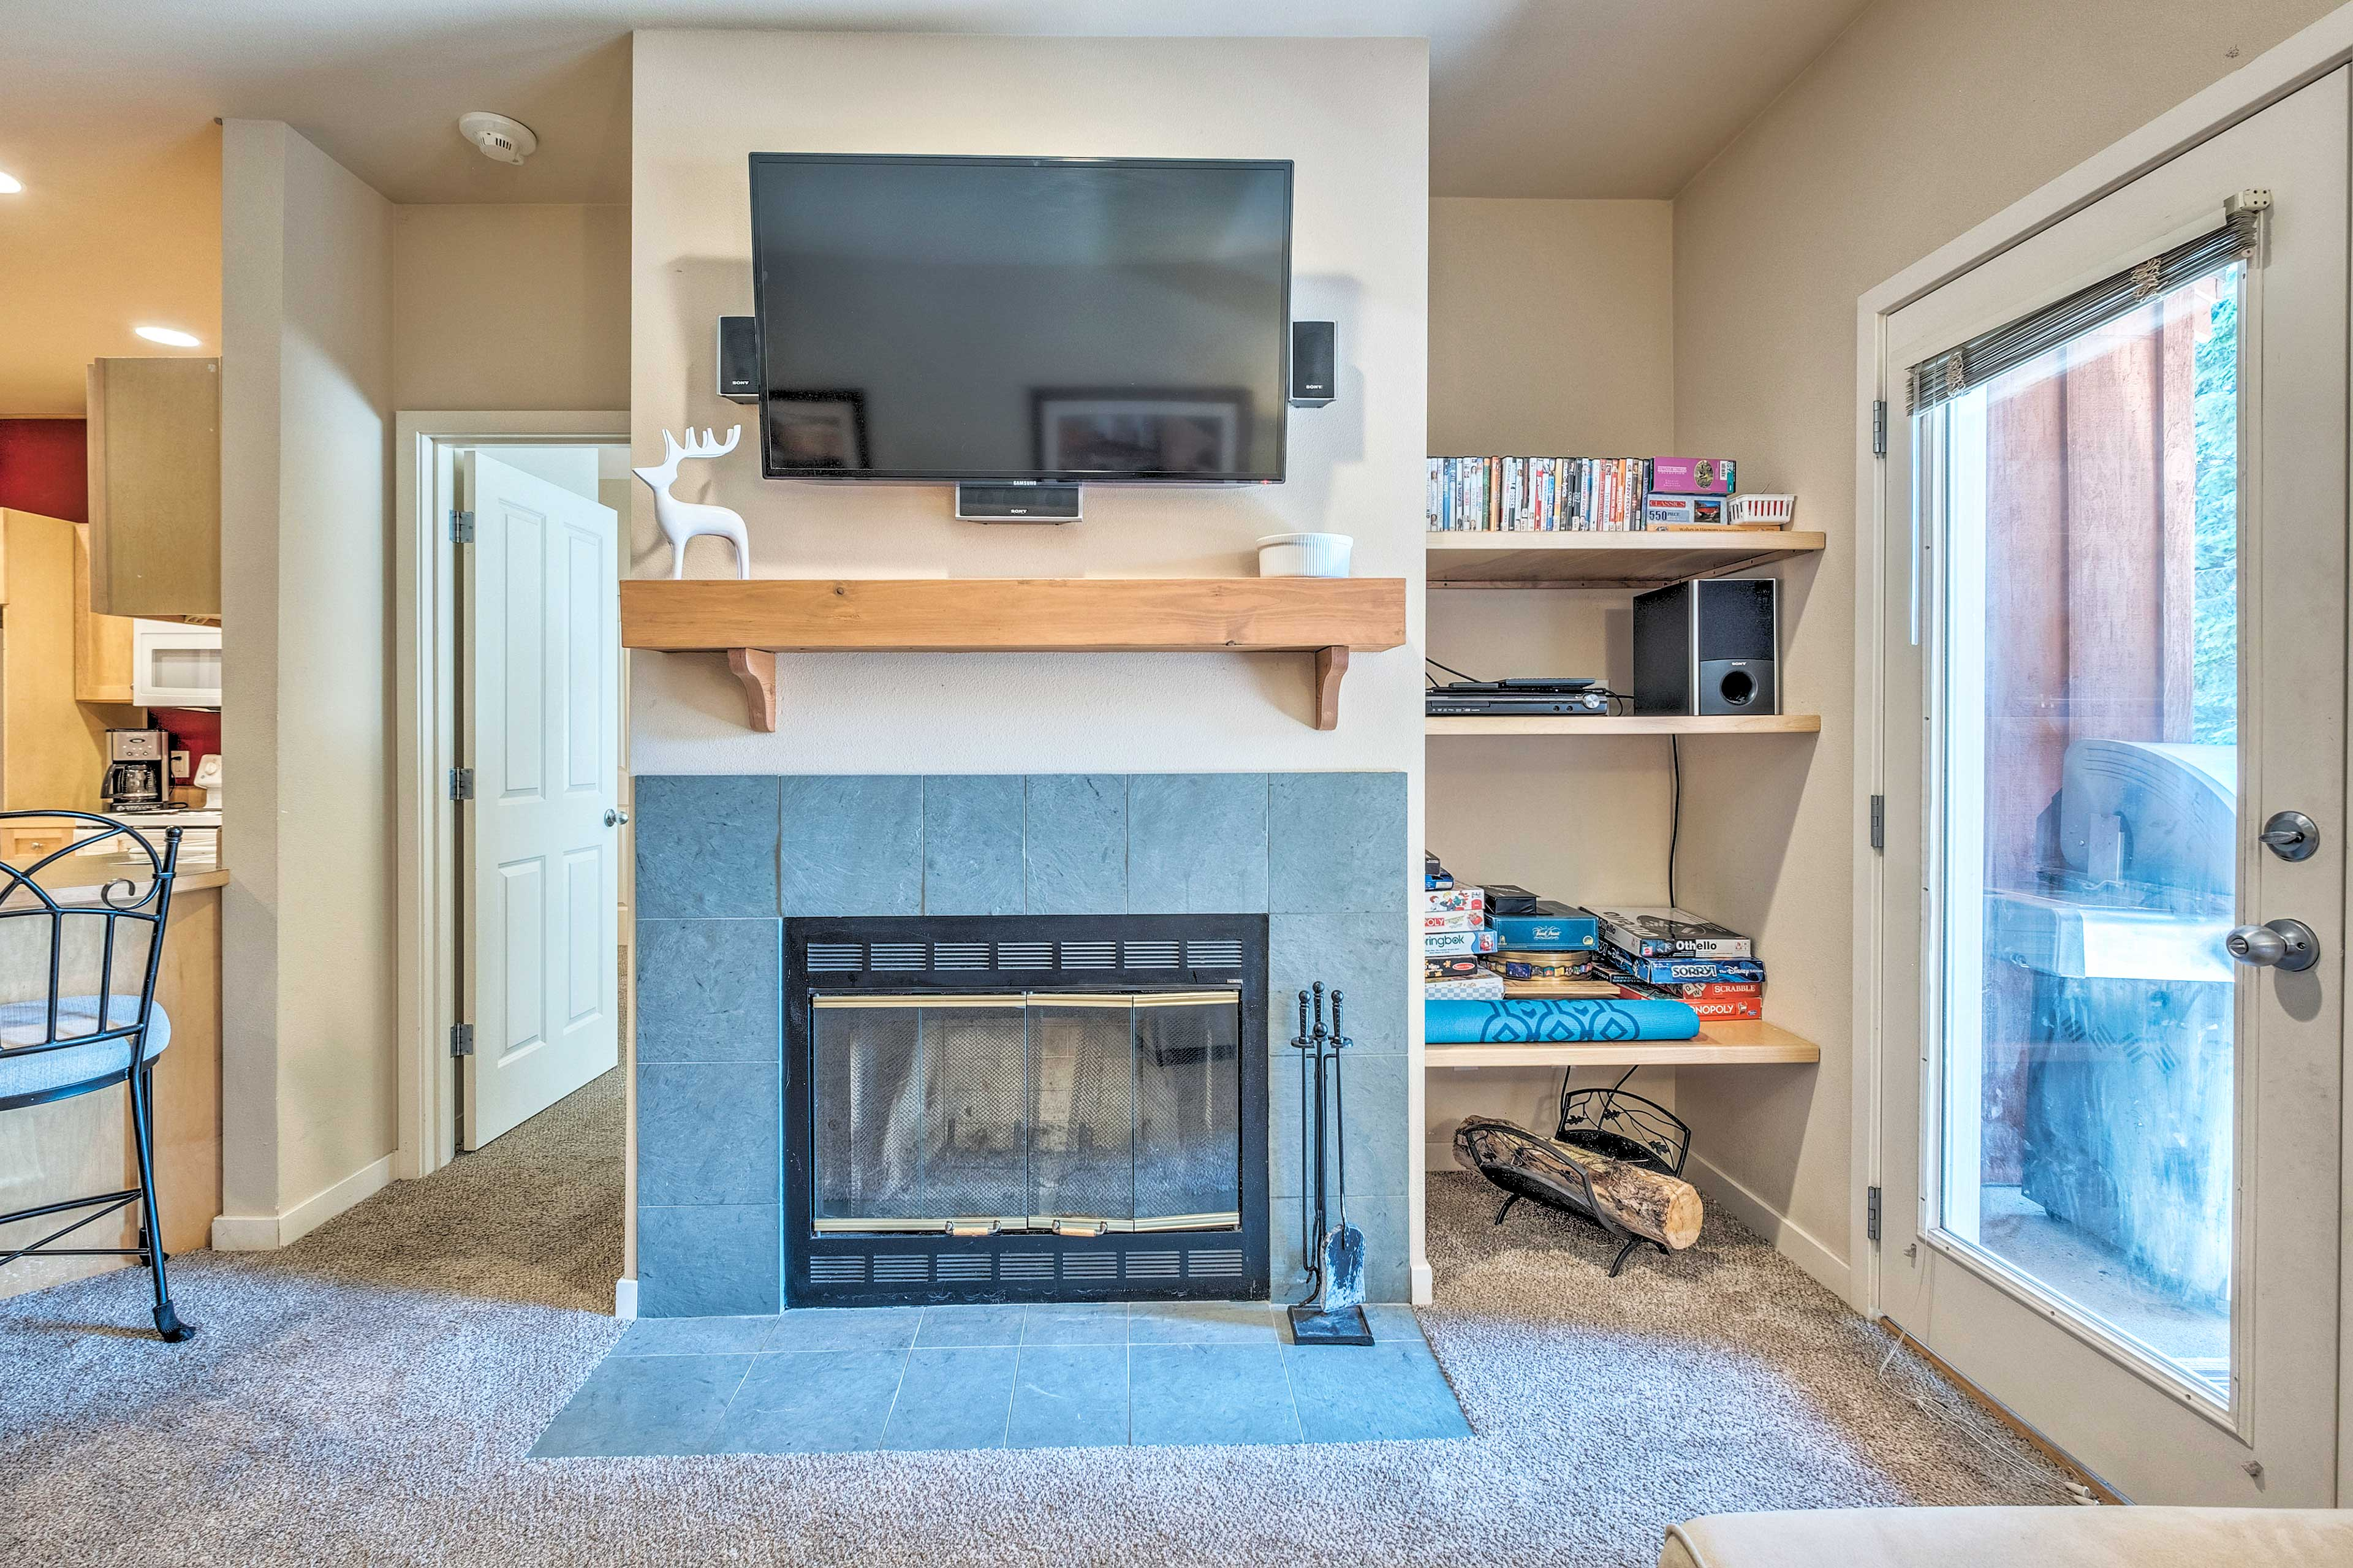 You'll love having the wood-burning fireplace in the winter!